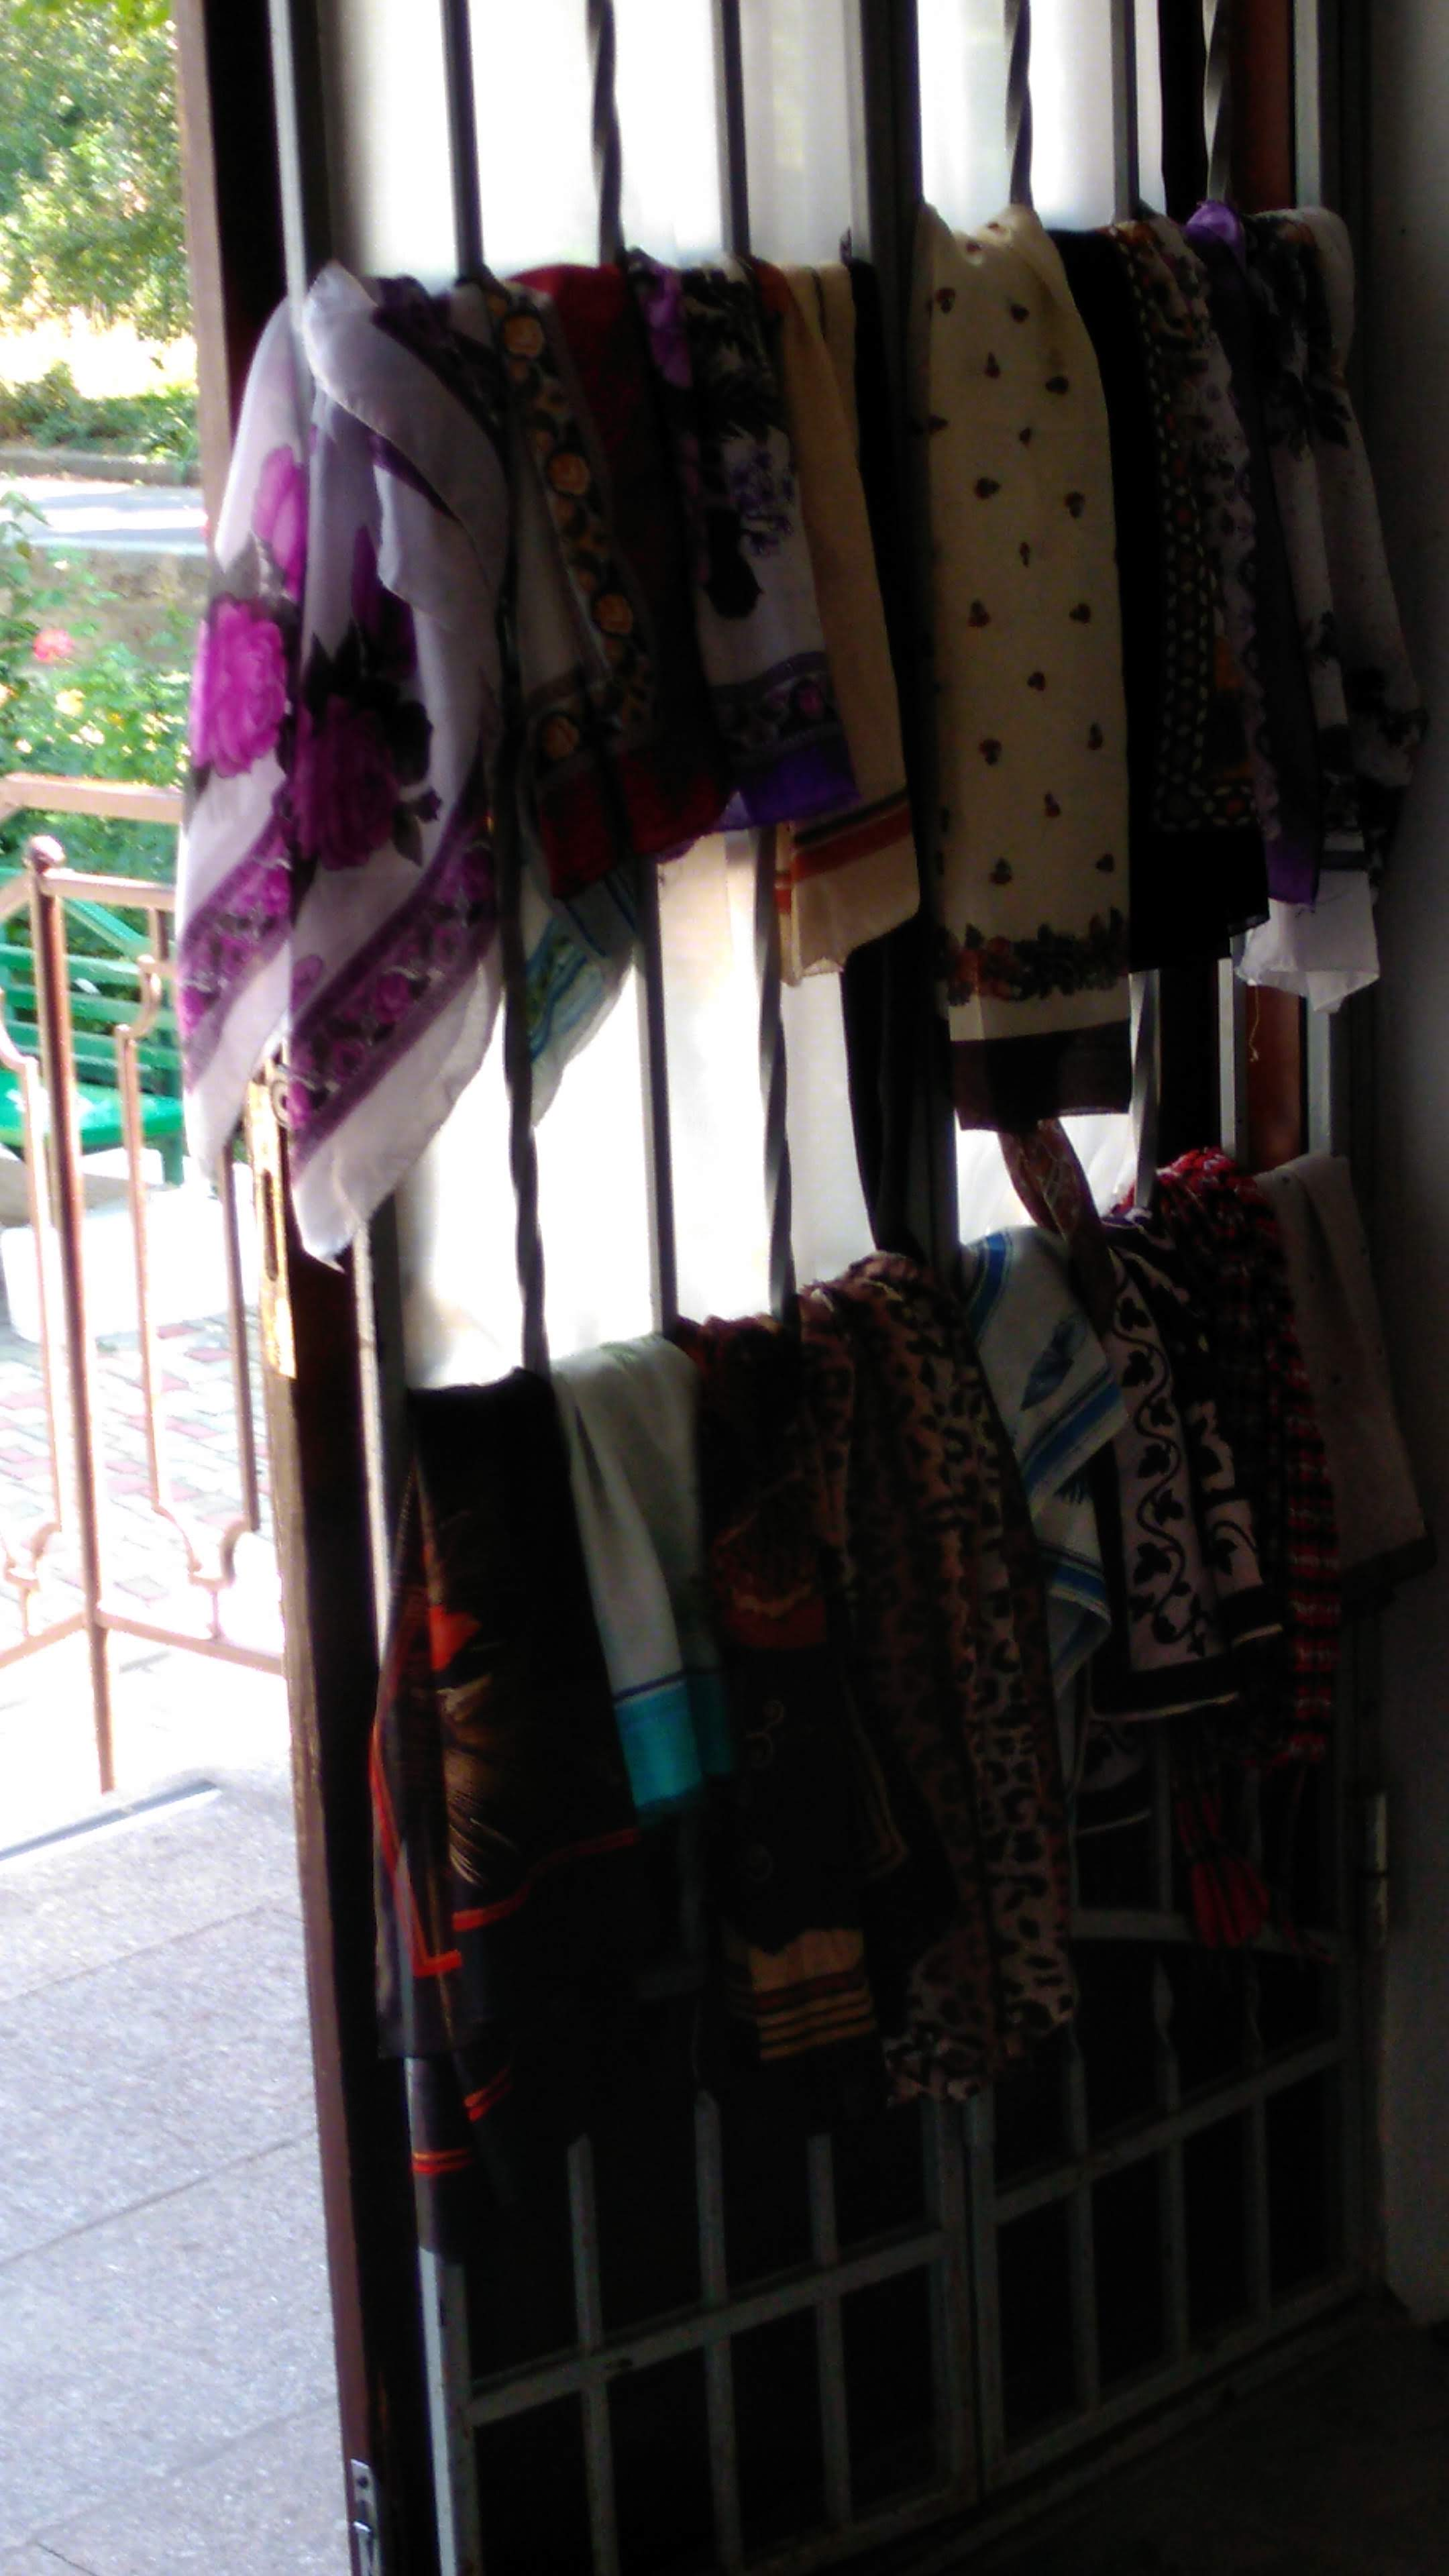 Scarves hang at the entry way which may be worried